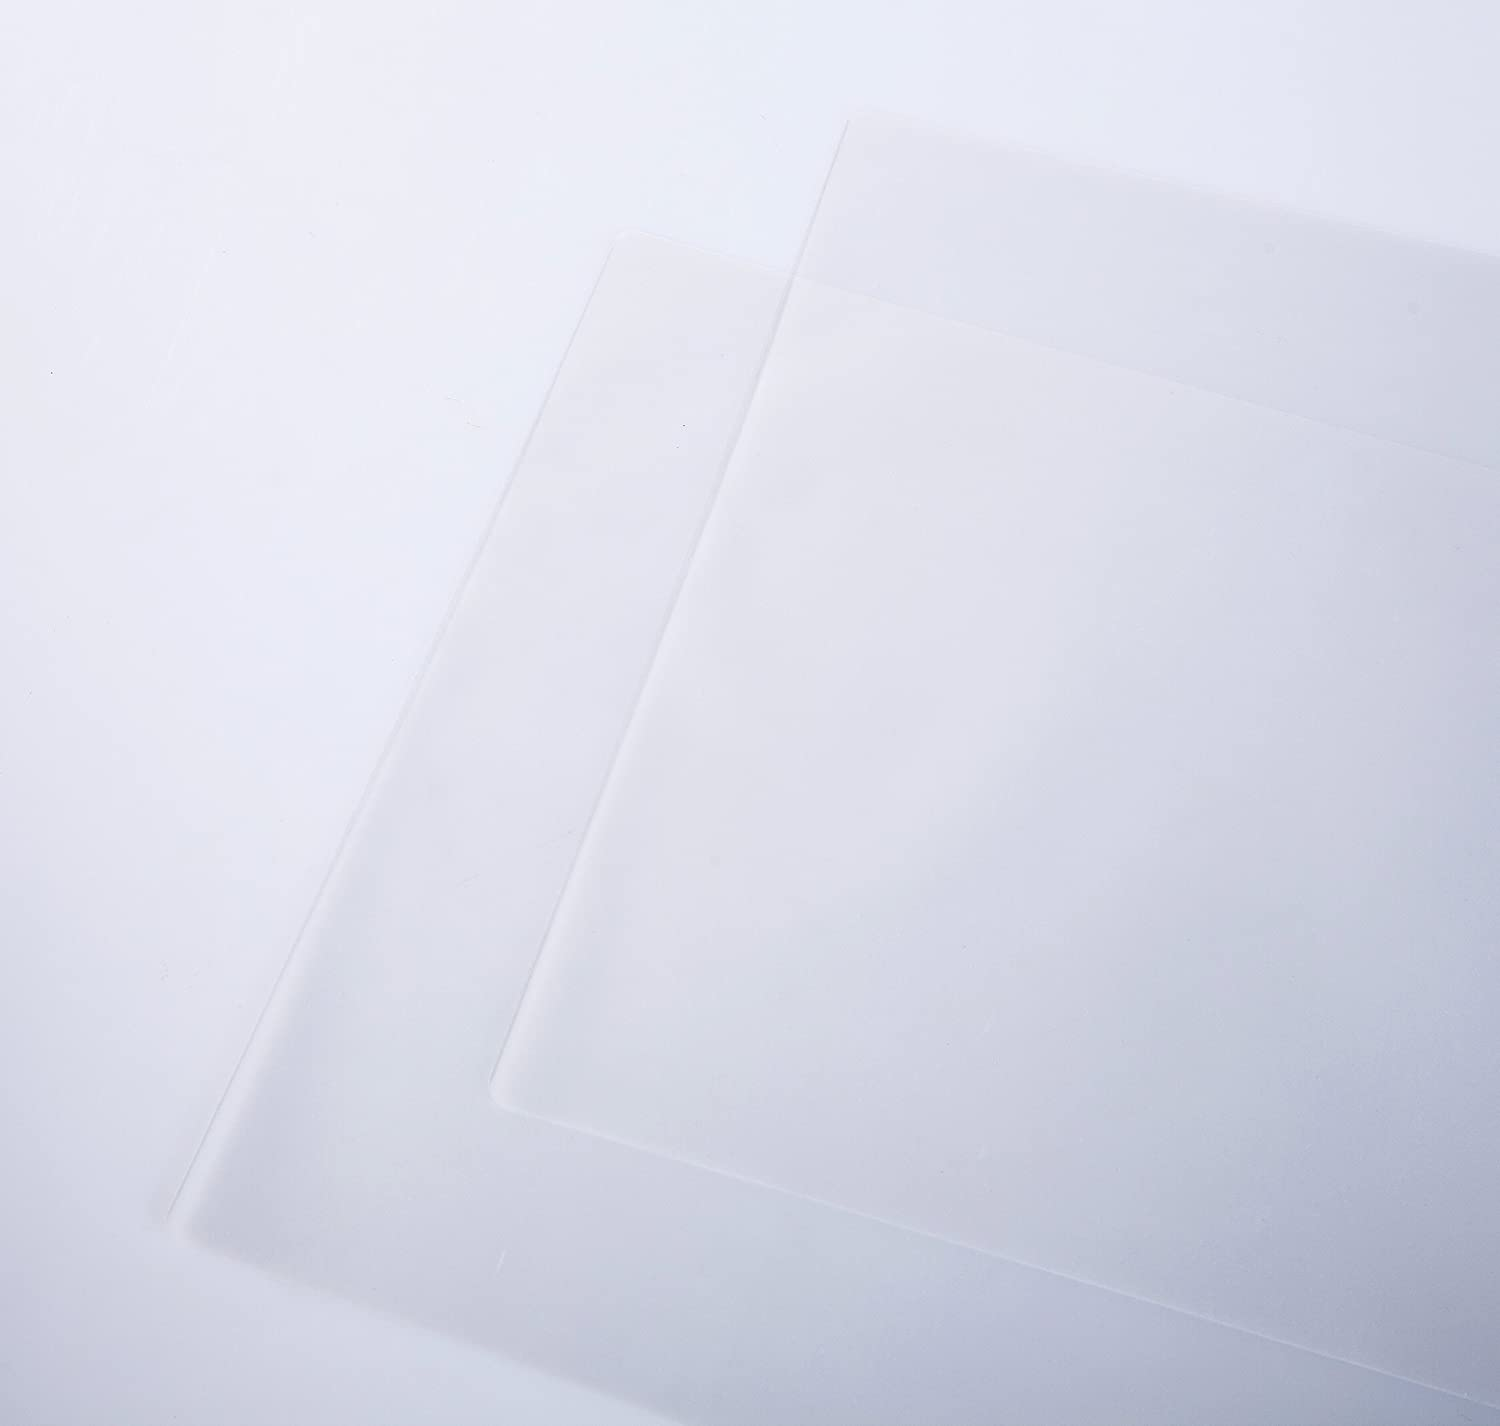 Two 100 Packs BNC Office Supply BNC Thermal Laminating Pouches 5 Mil Thick 200 Pack Business Card Size